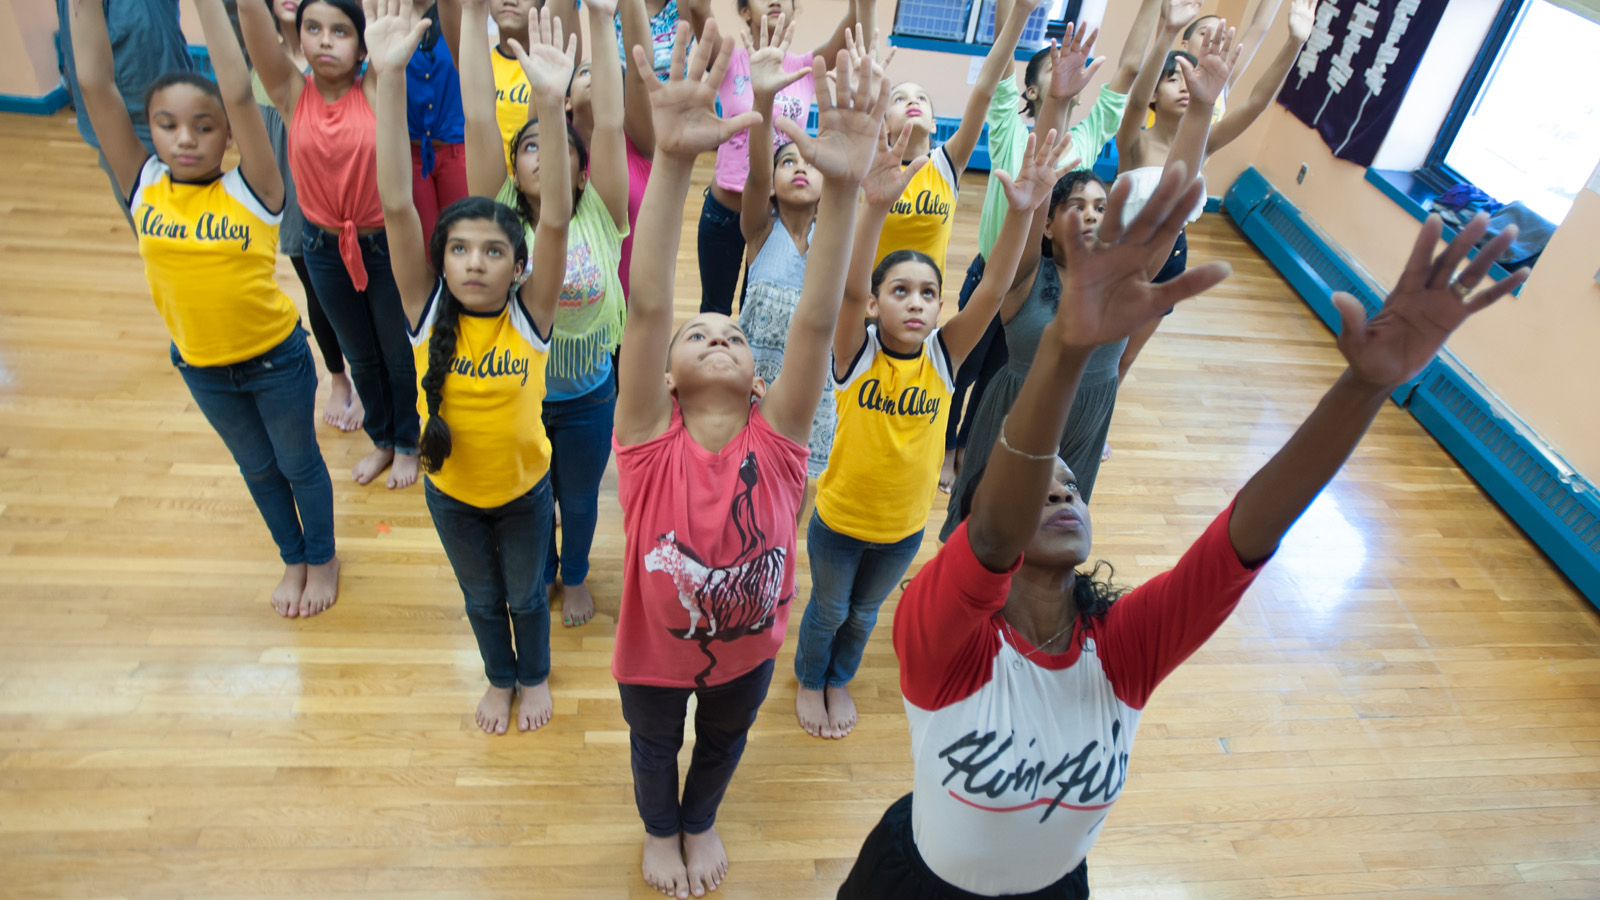 Arts in education community programs alvin ailey american dance aileys arts in education community programs aie represents a vital component of alvin aileys original vision since 1992 aie has given over 100000 malvernweather Images